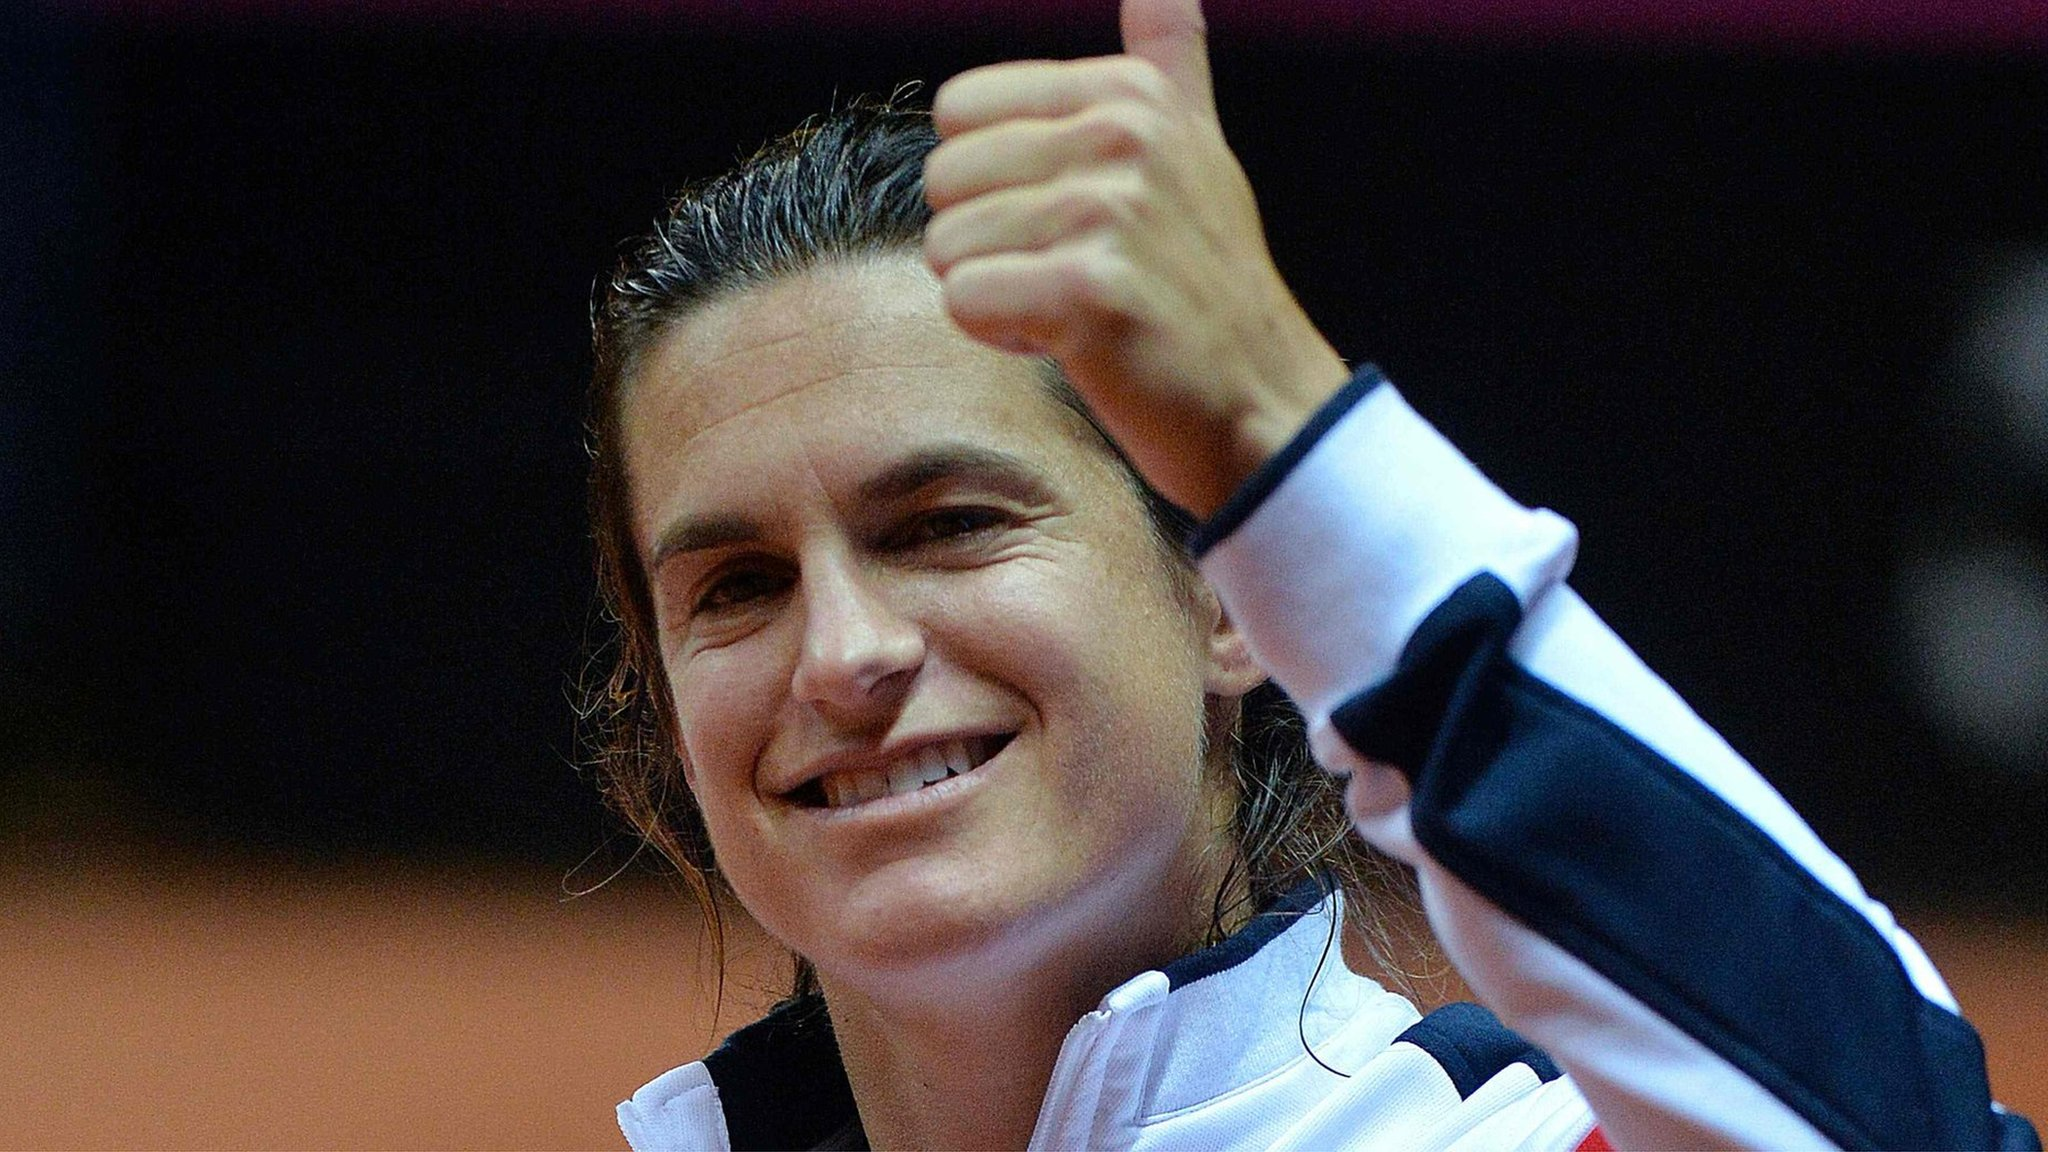 Mauresmo named France's first female Davis Cup captain